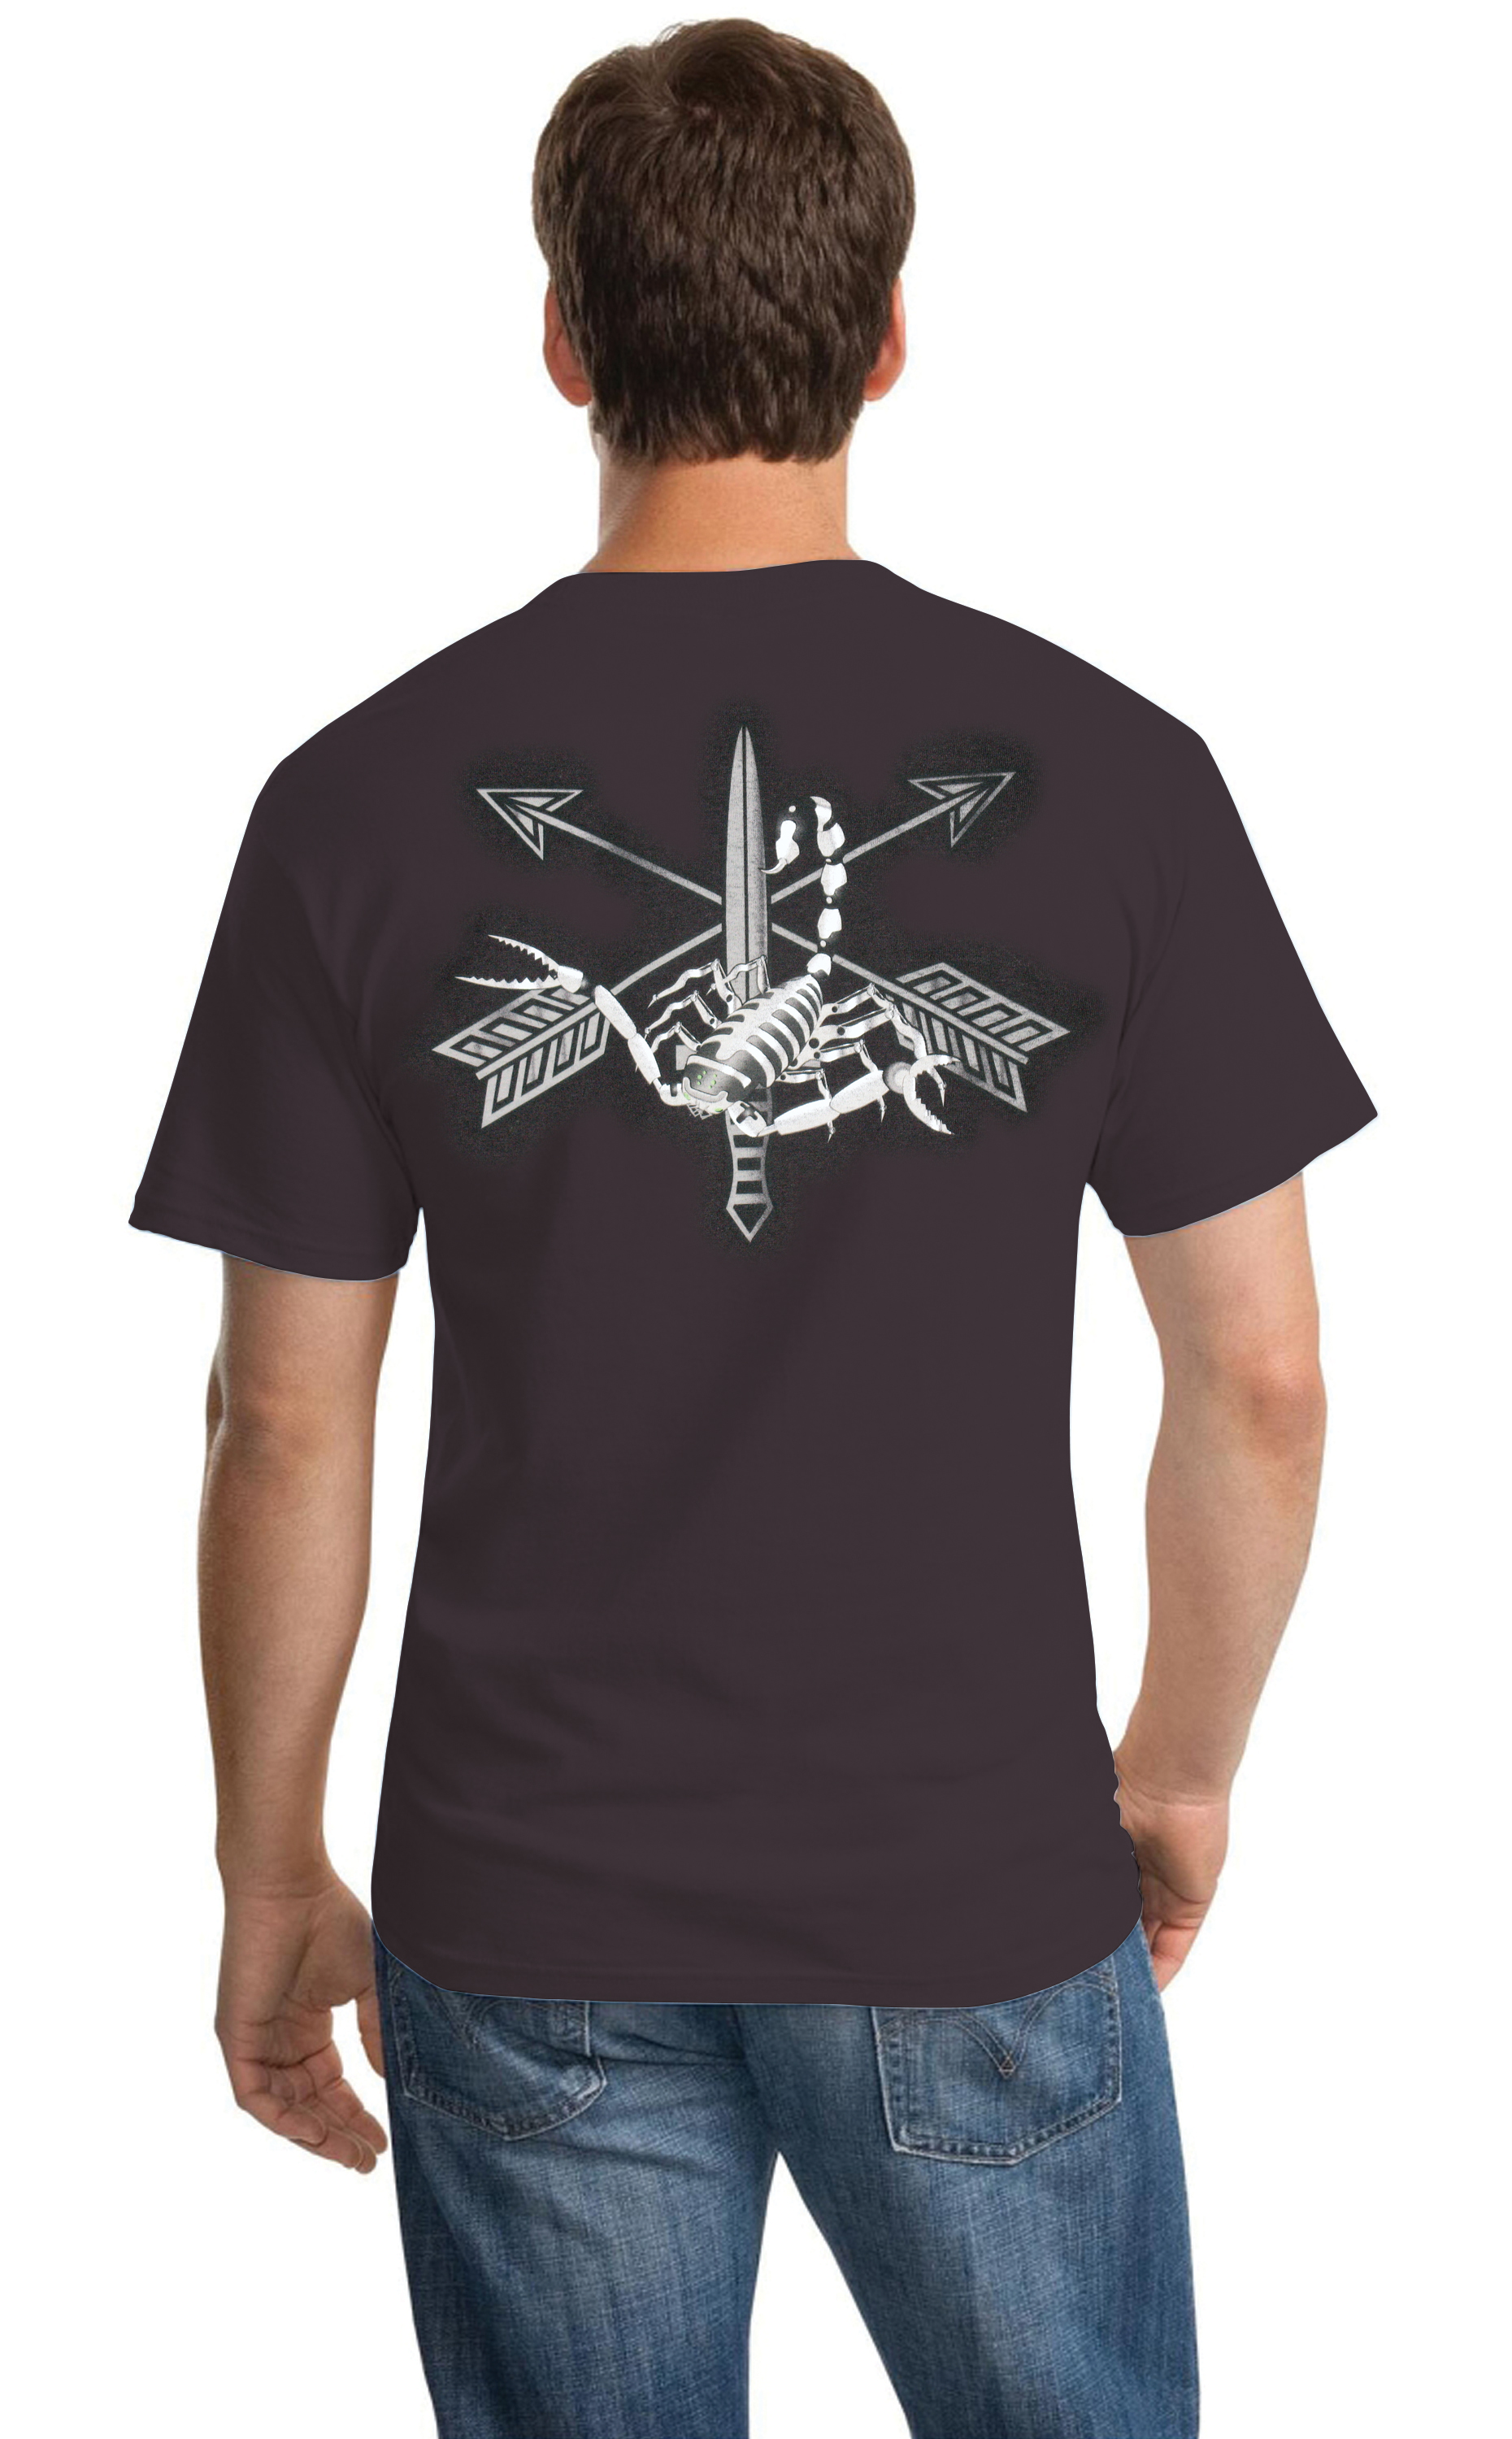 Screen Printing Fort Bragg, NC & Fort Hood, TX | Order Online Today